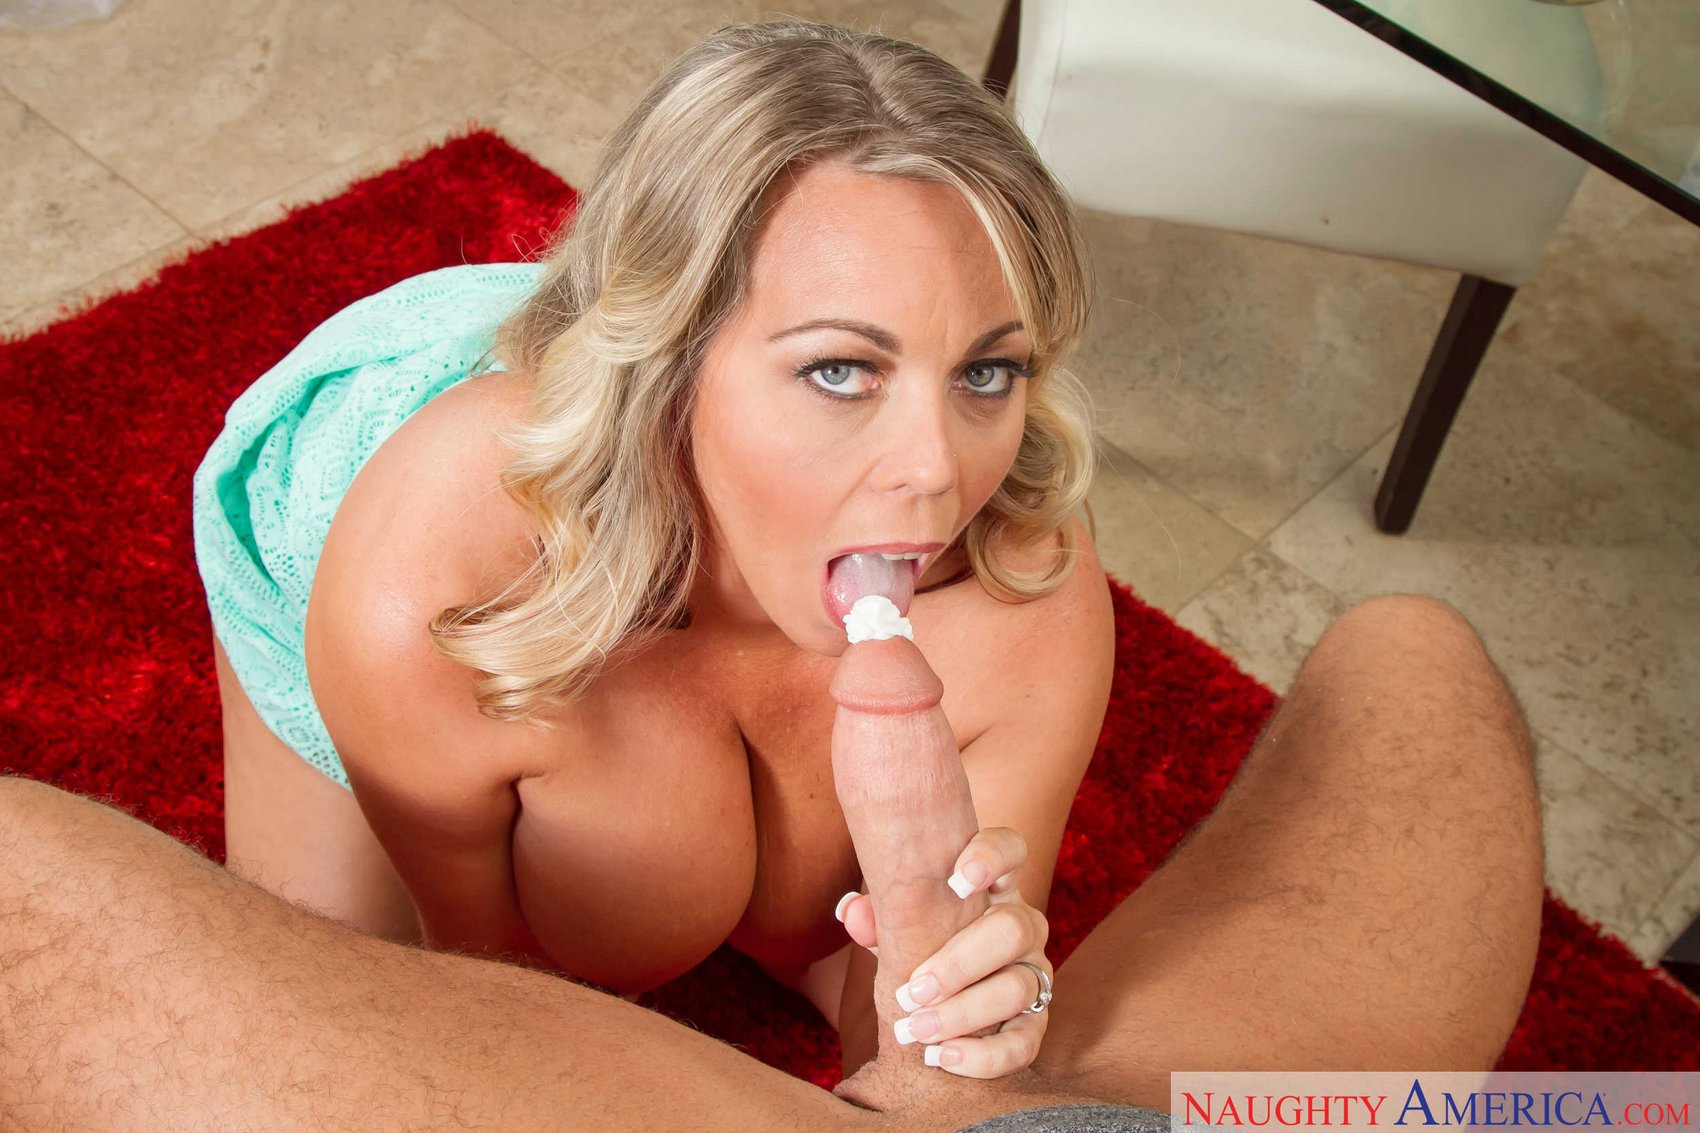 Amber lynn bach gets her pussy licked and fucked so hard 9